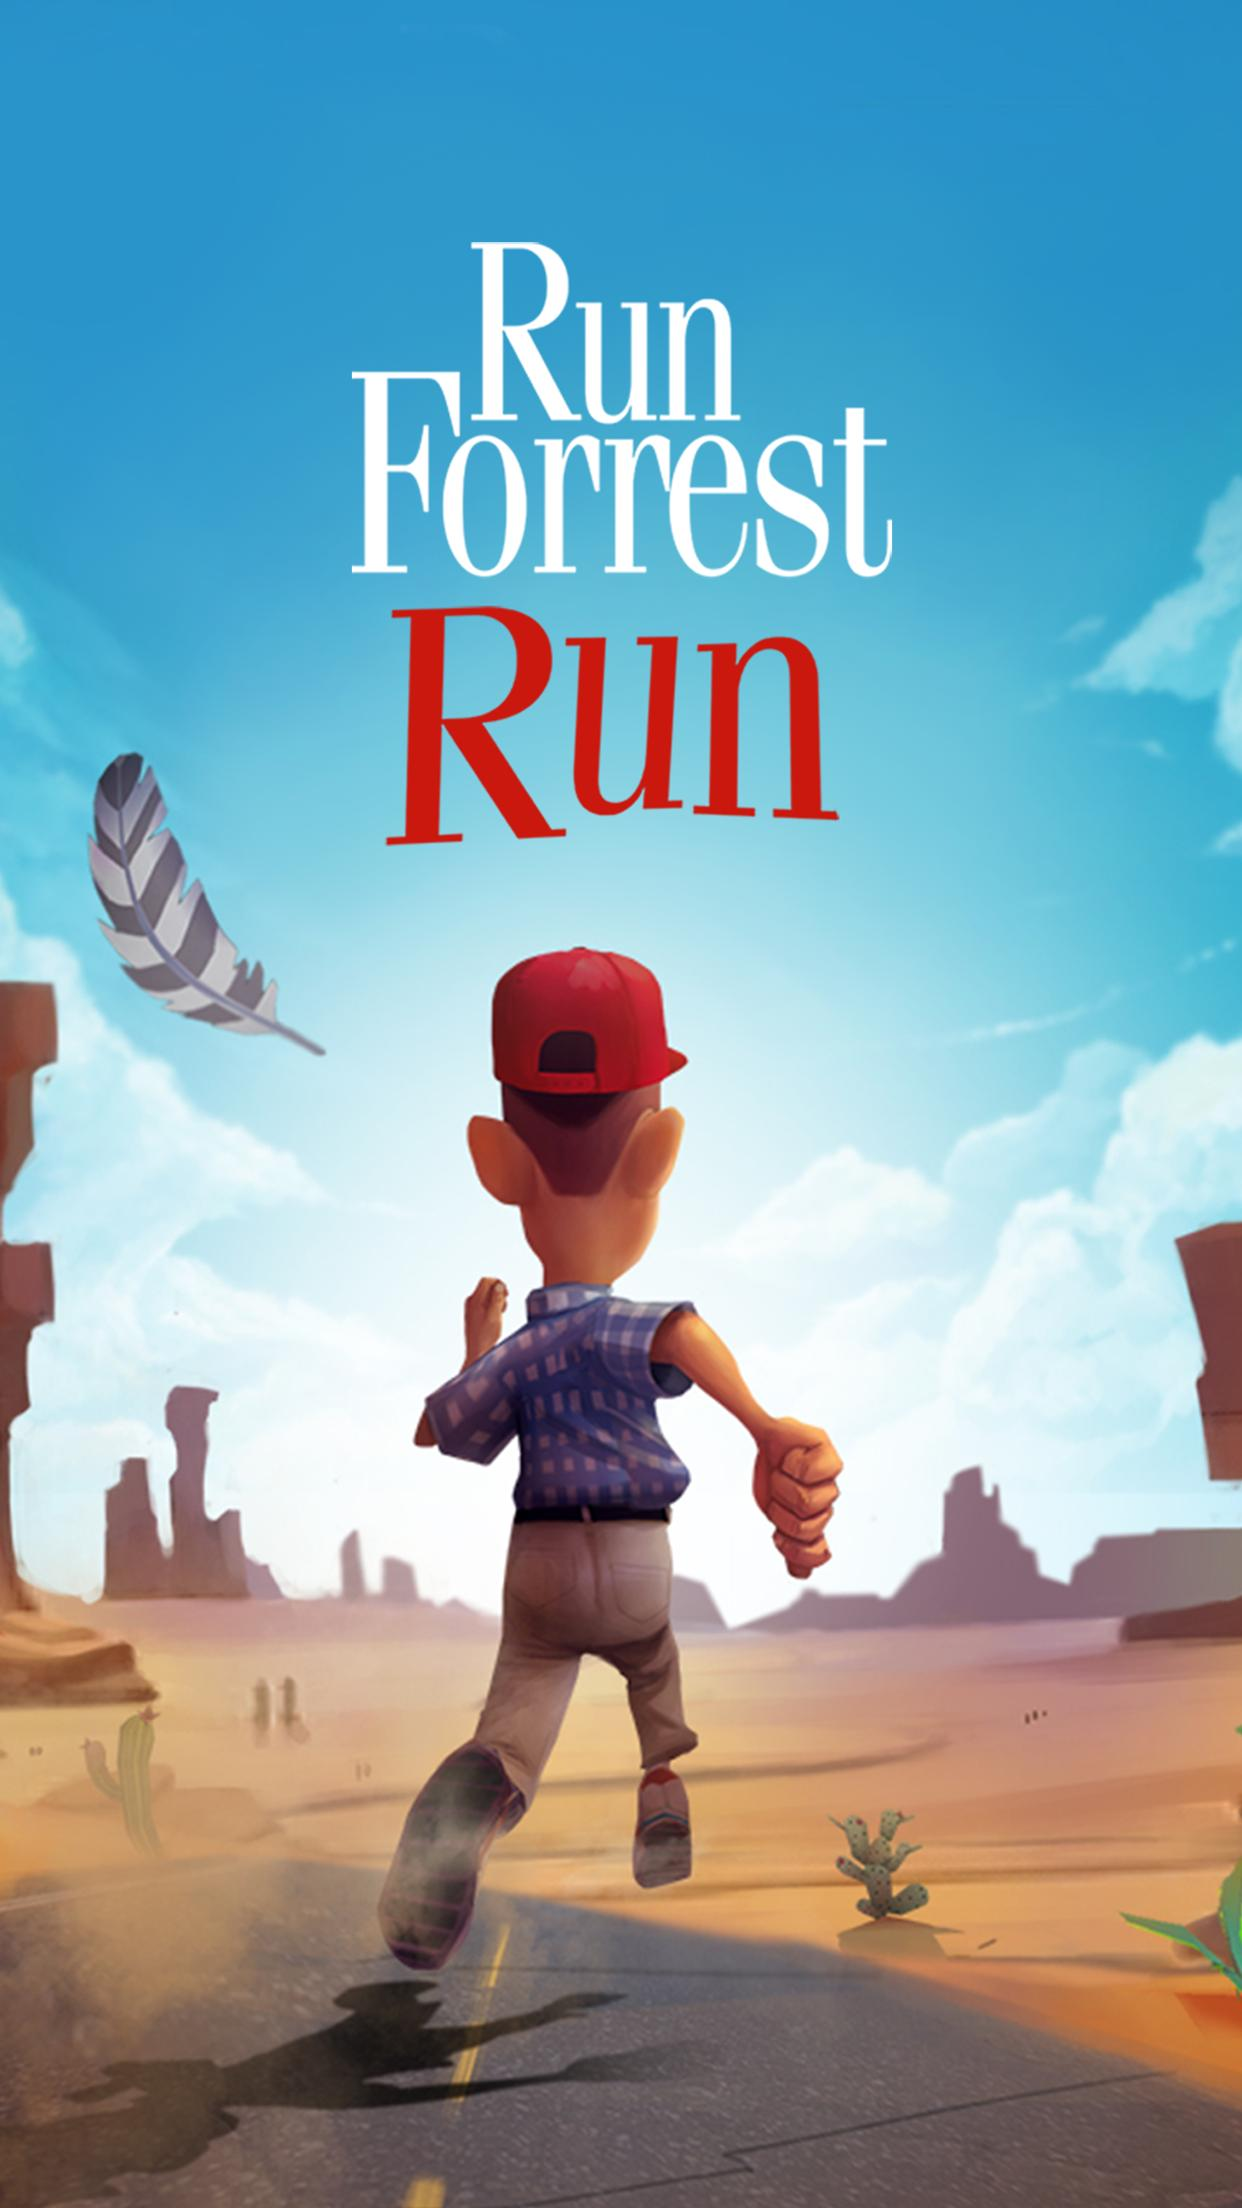 Run Forrest Run - New Games 2020: Running Games 1.6.4 Screenshot 12